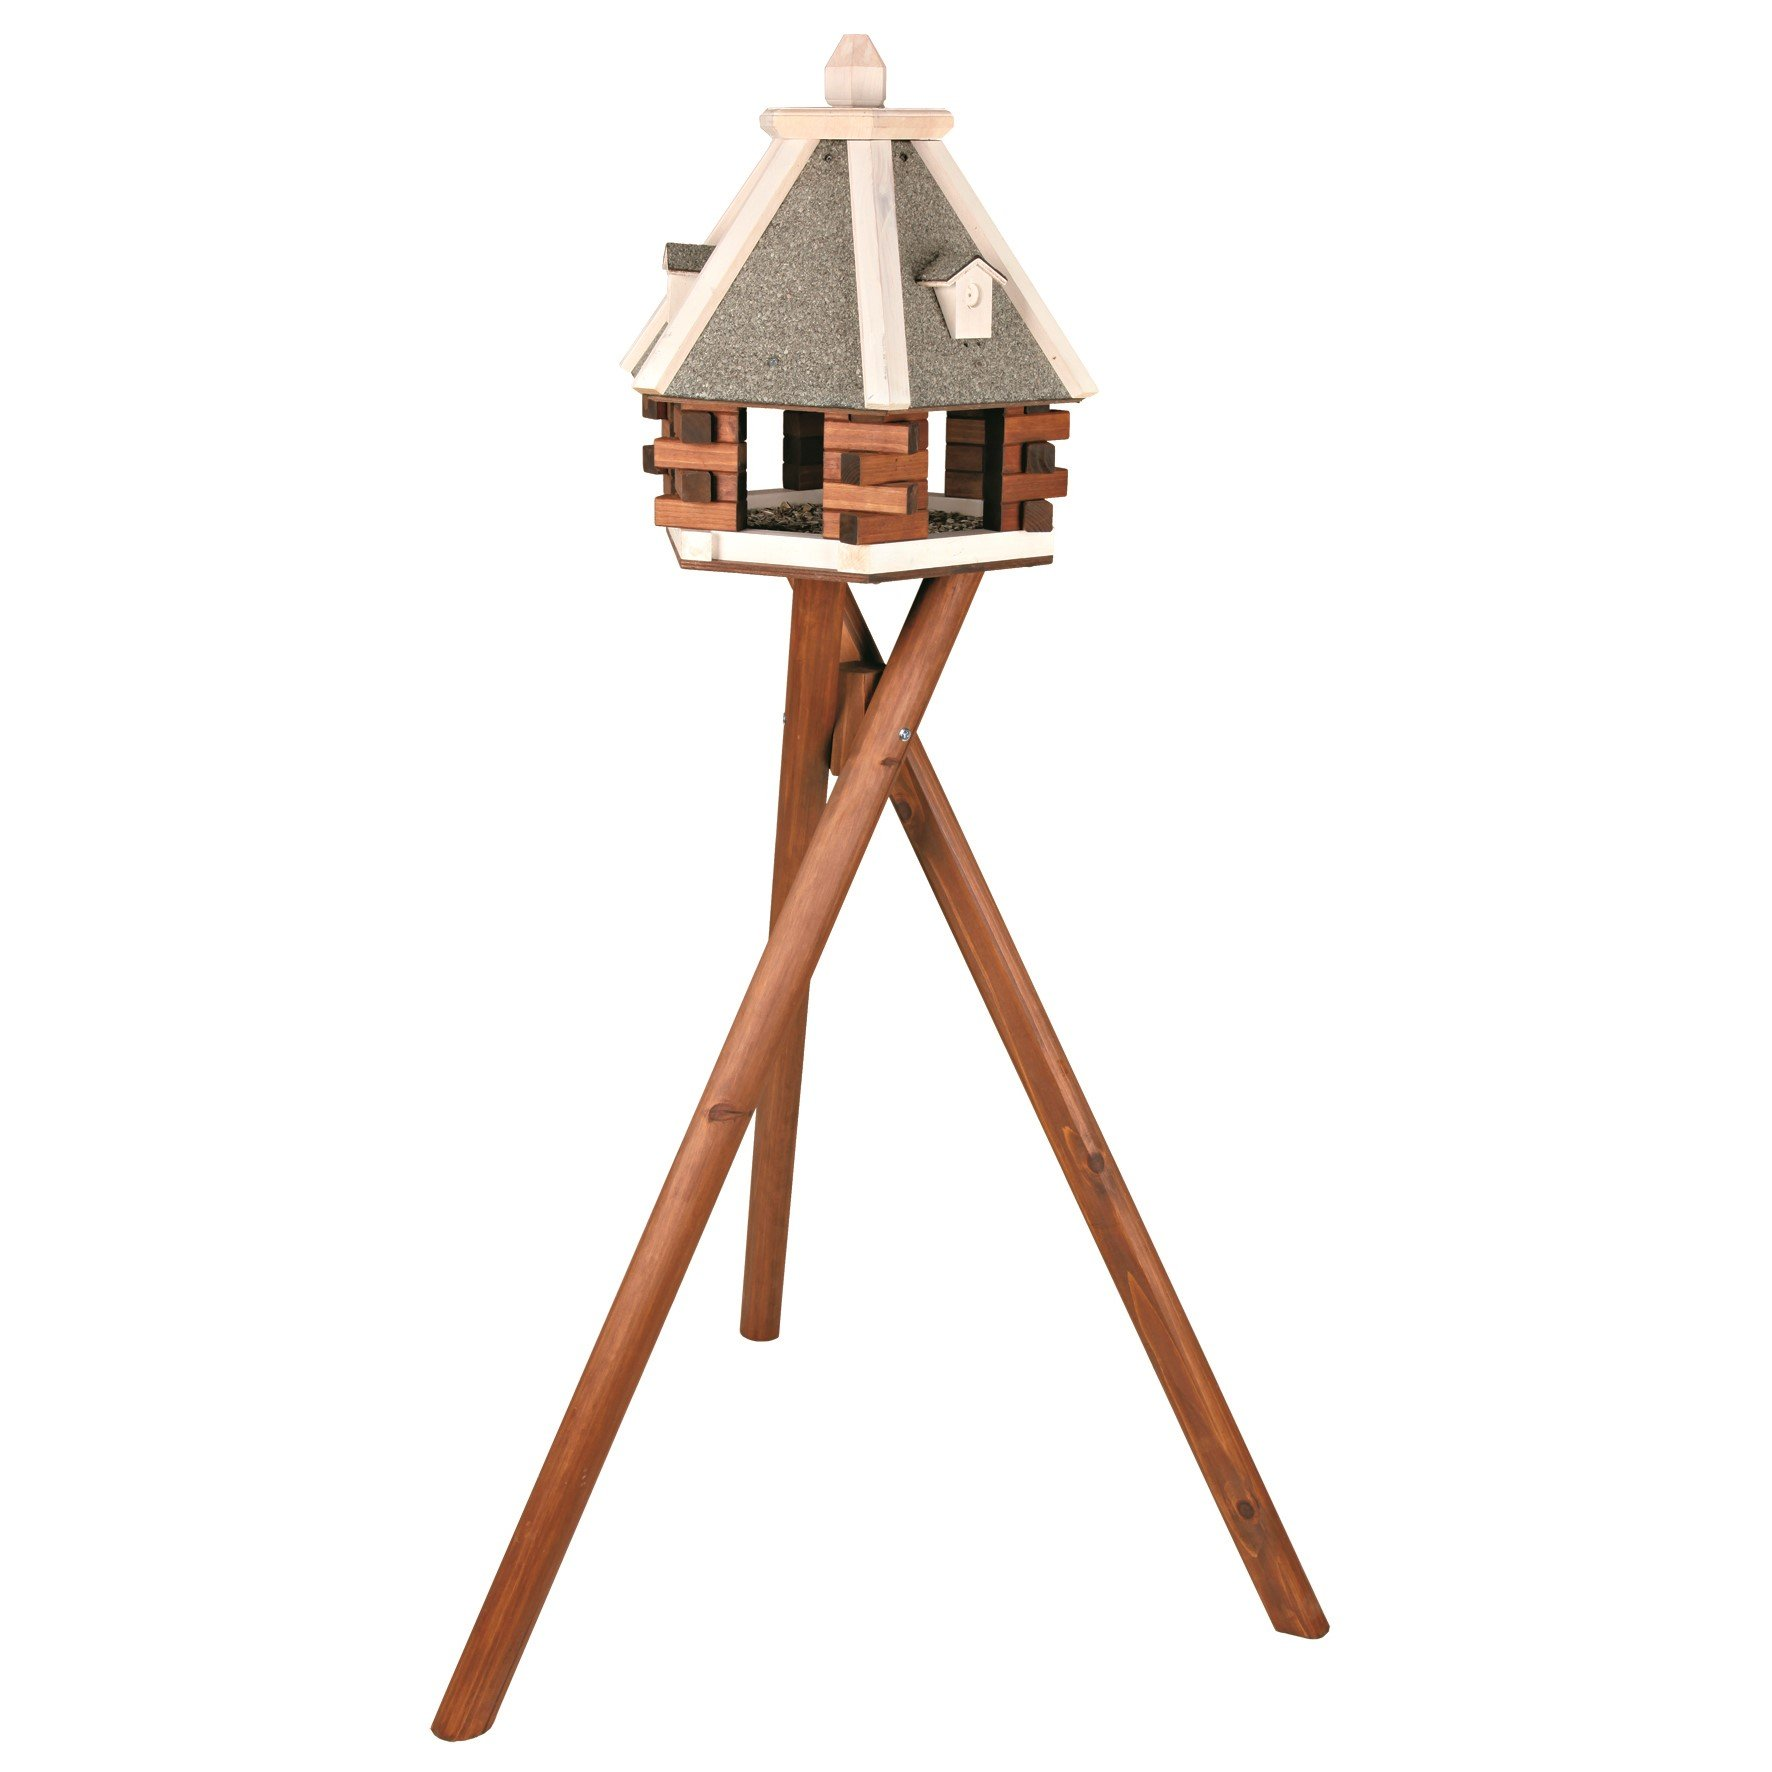 Trixie Pet Products Nordic Wooden Bird Feeder with Stand